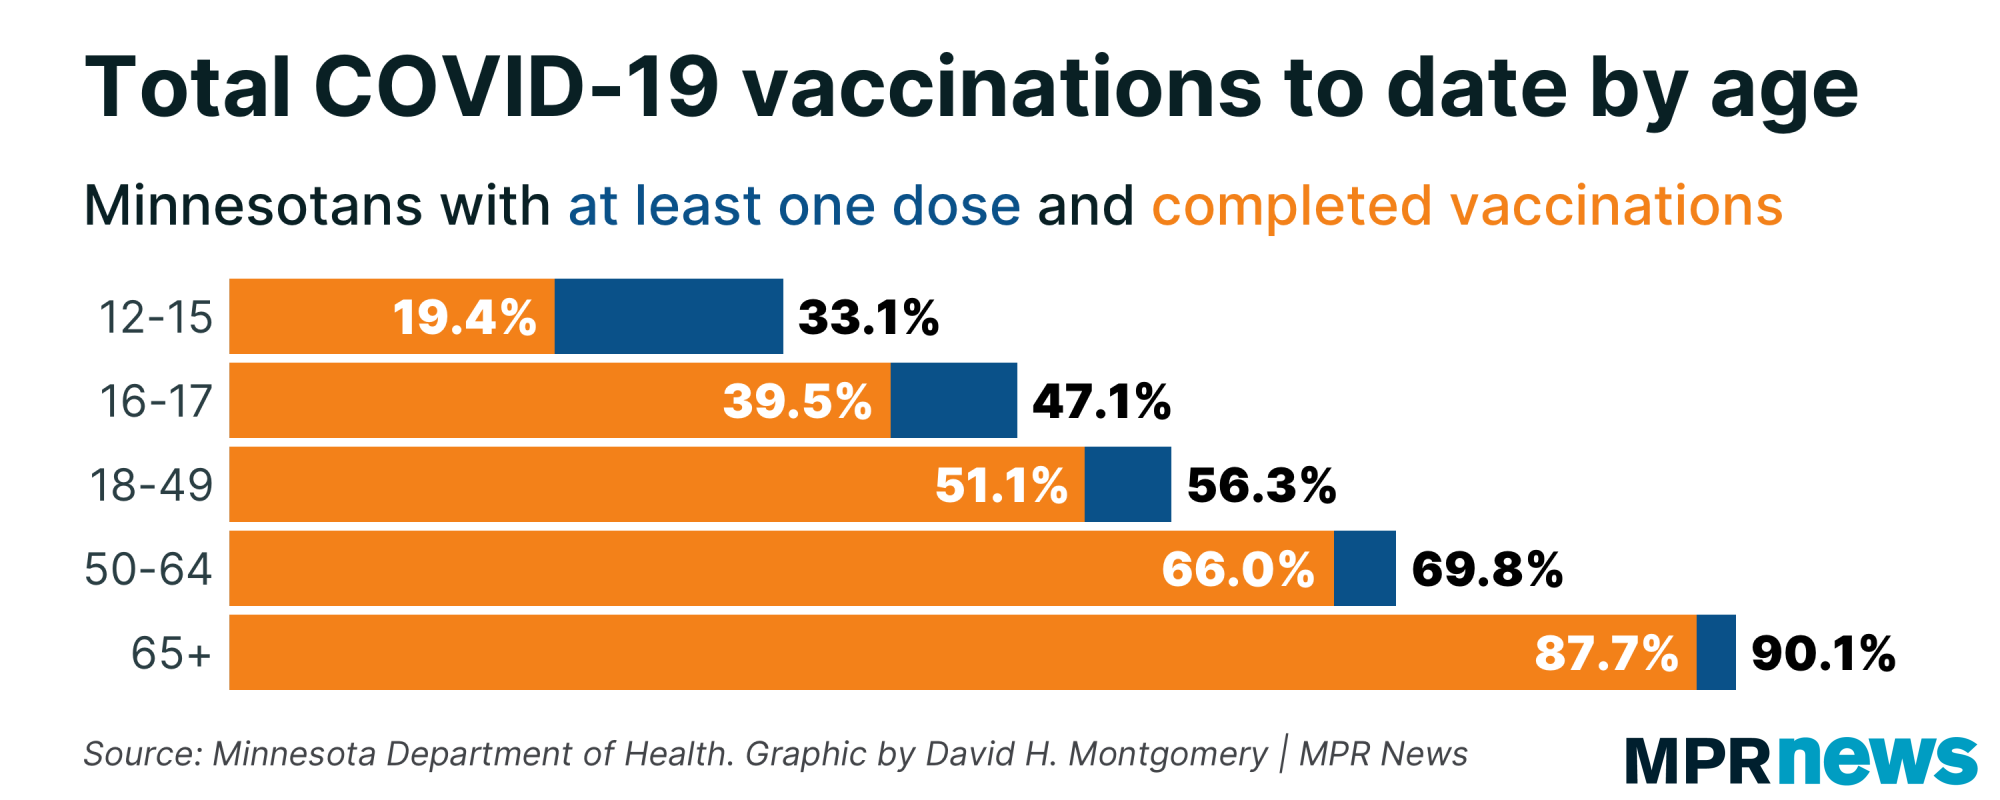 Total COVID-19 vaccinations to date